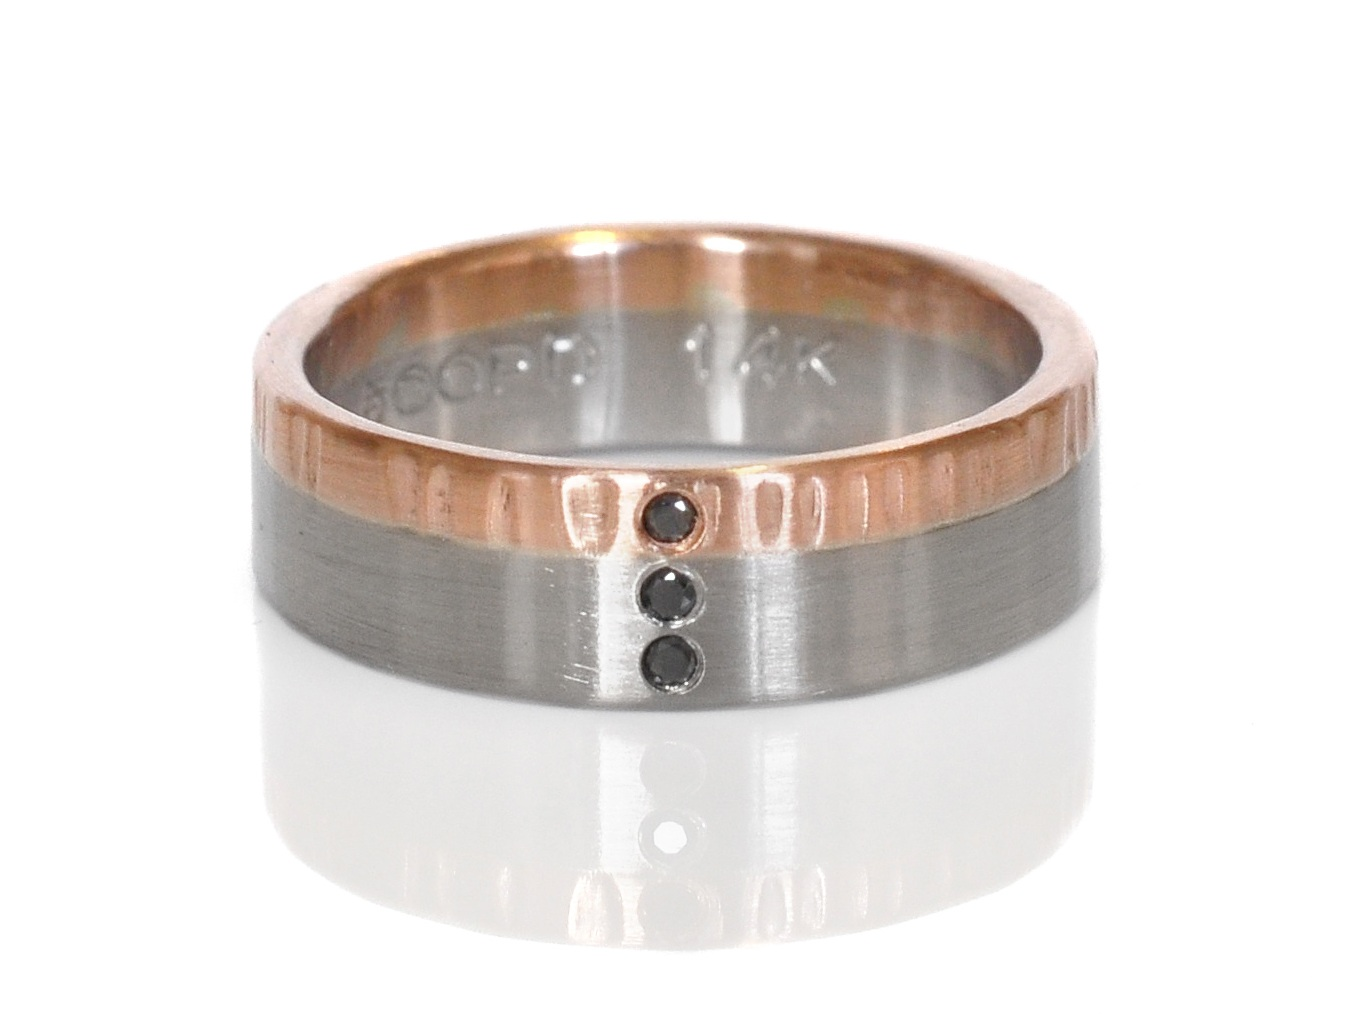 Modern mixed metal wedding band of linear hammered 14k red gold, satin finish 500 palladium and flush set black diamonds.